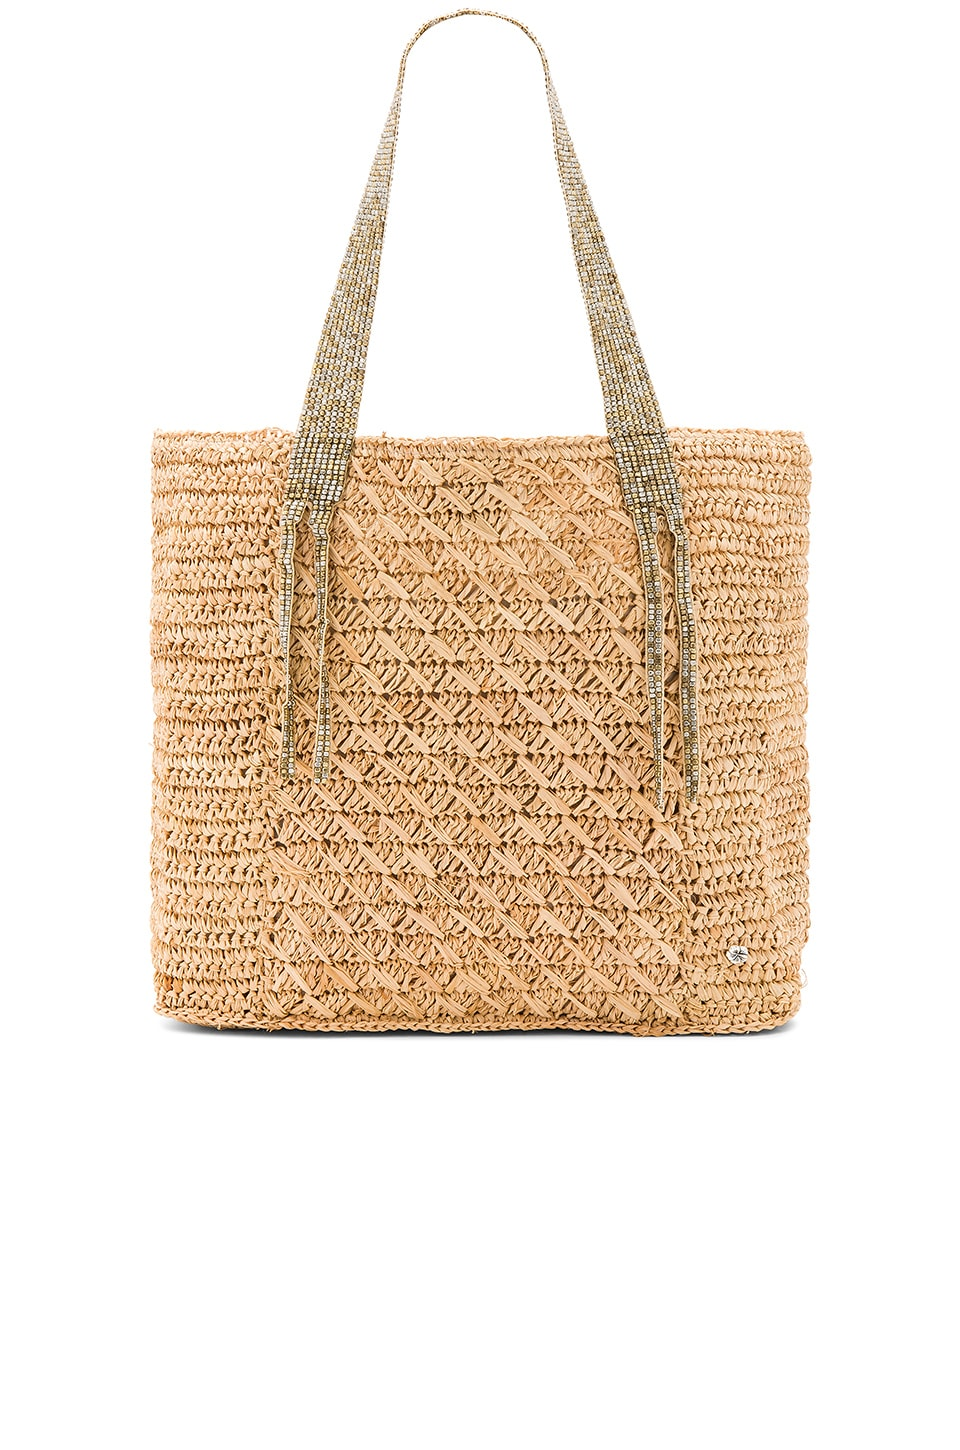 Trinity Tote by Florabella